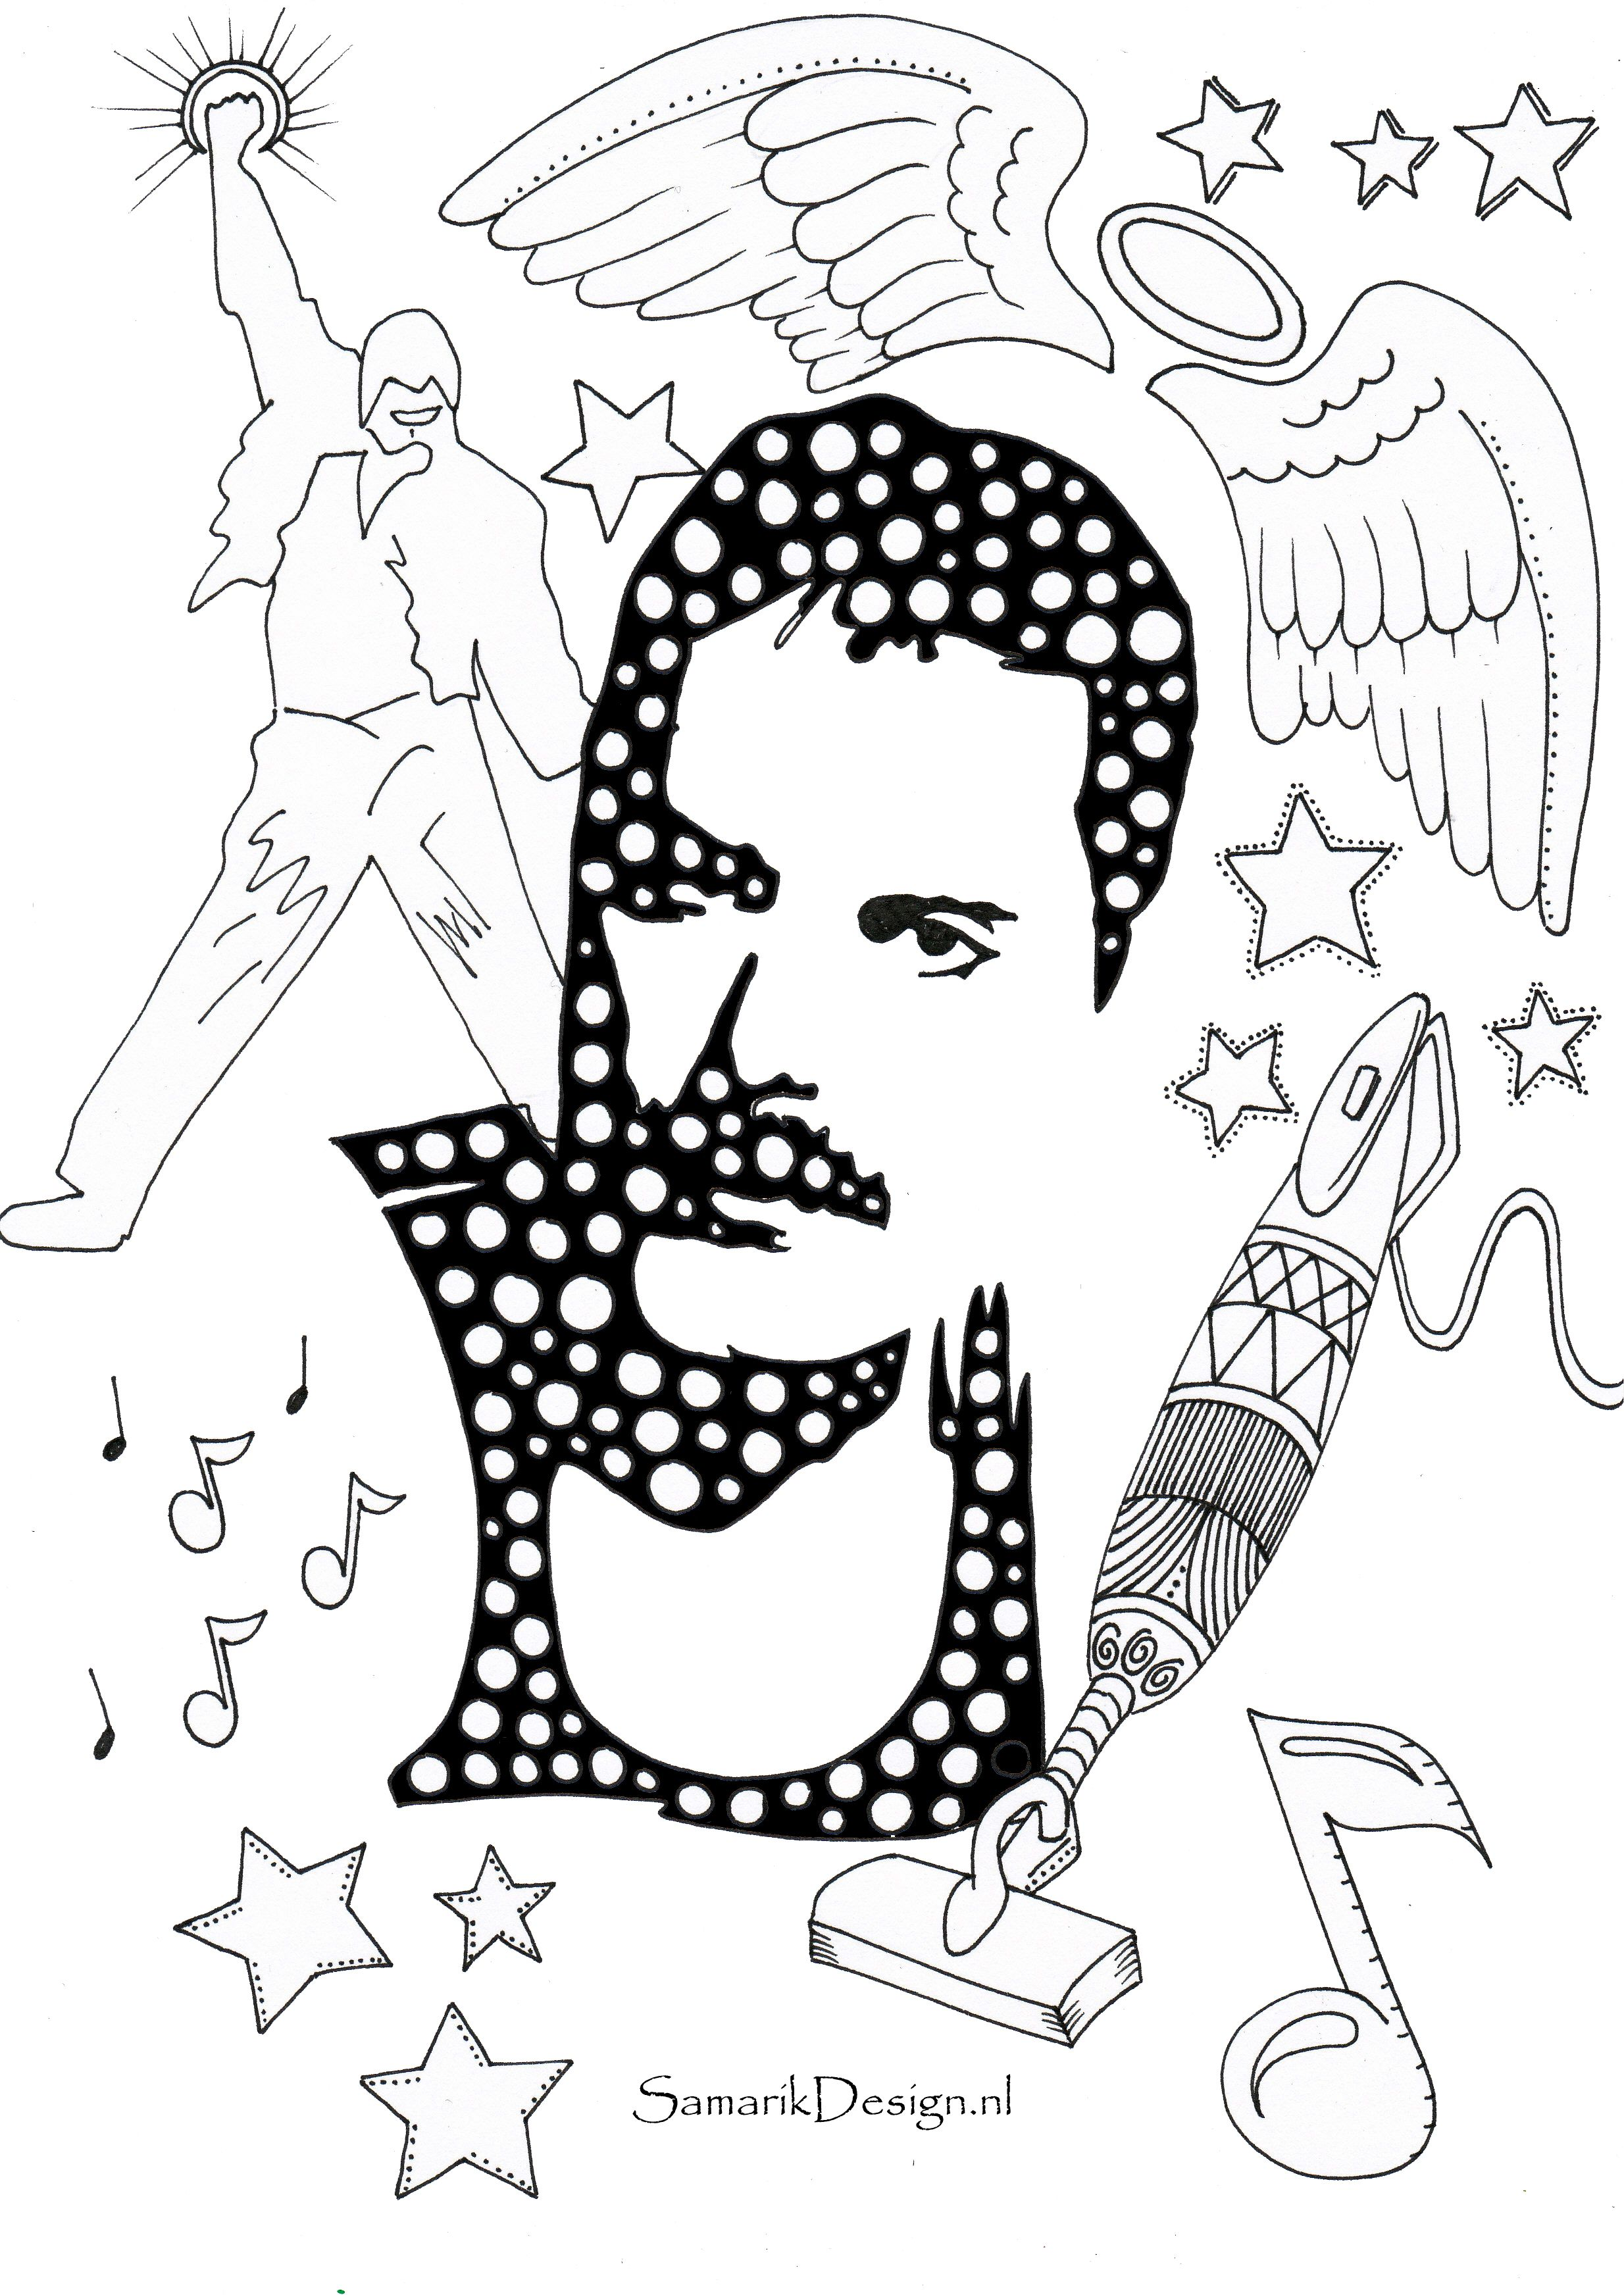 Freddie Mercury Famous People Coloring Pages Unicorn Coloring Pages Christmas Tree Coloring Page